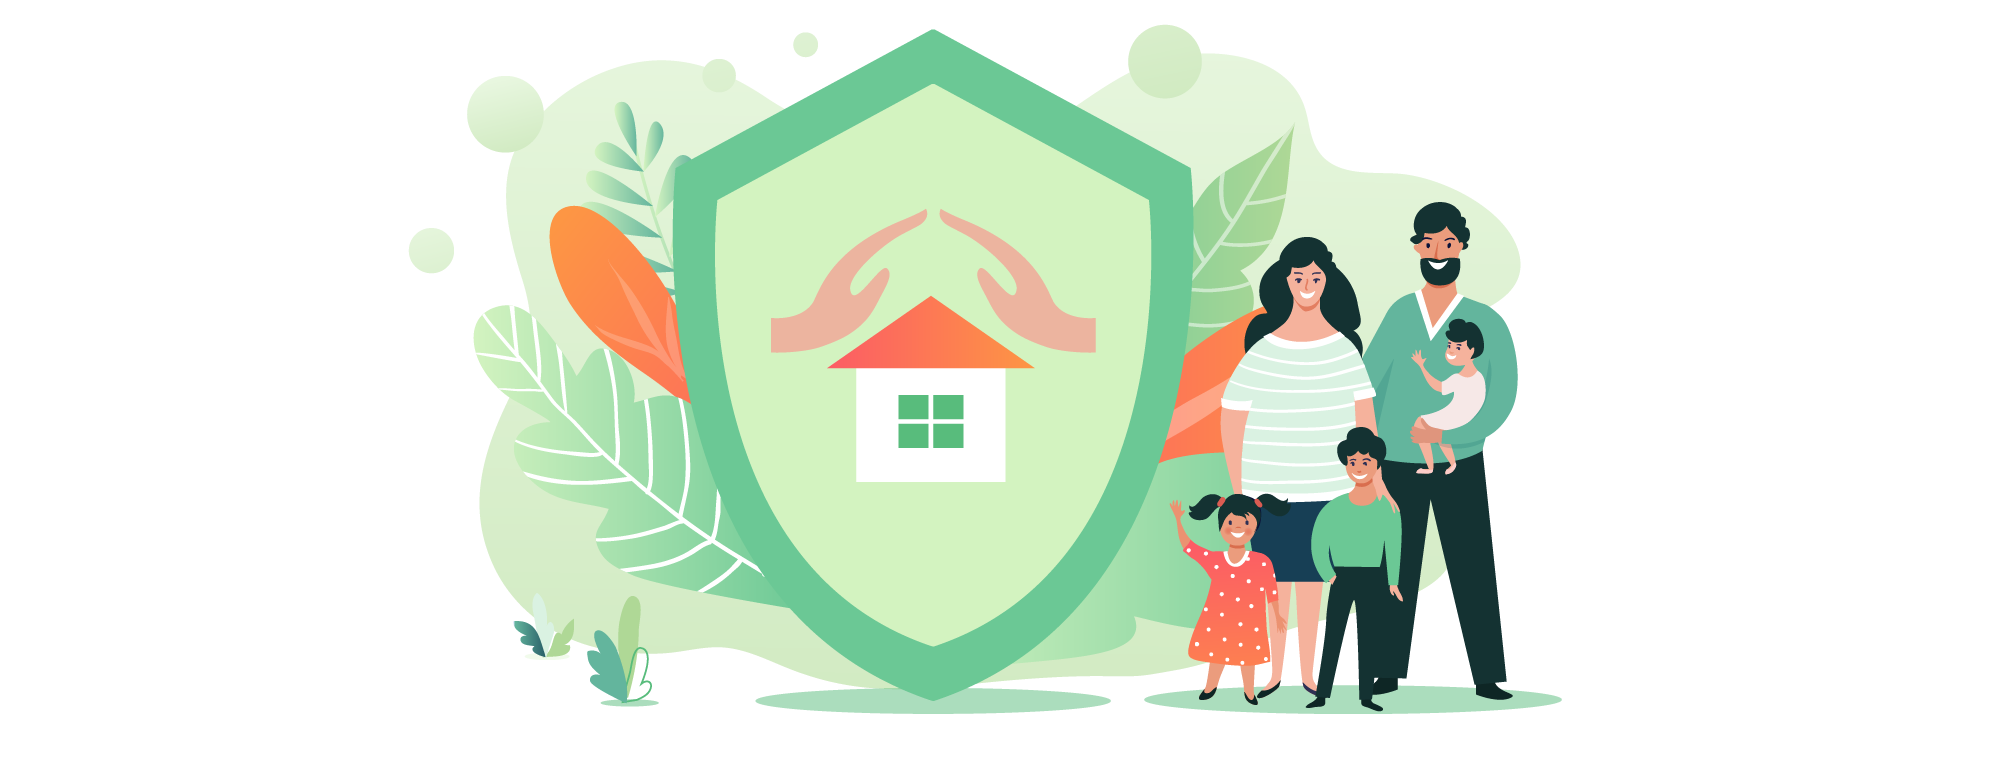 Home Contents Insurance Header Image